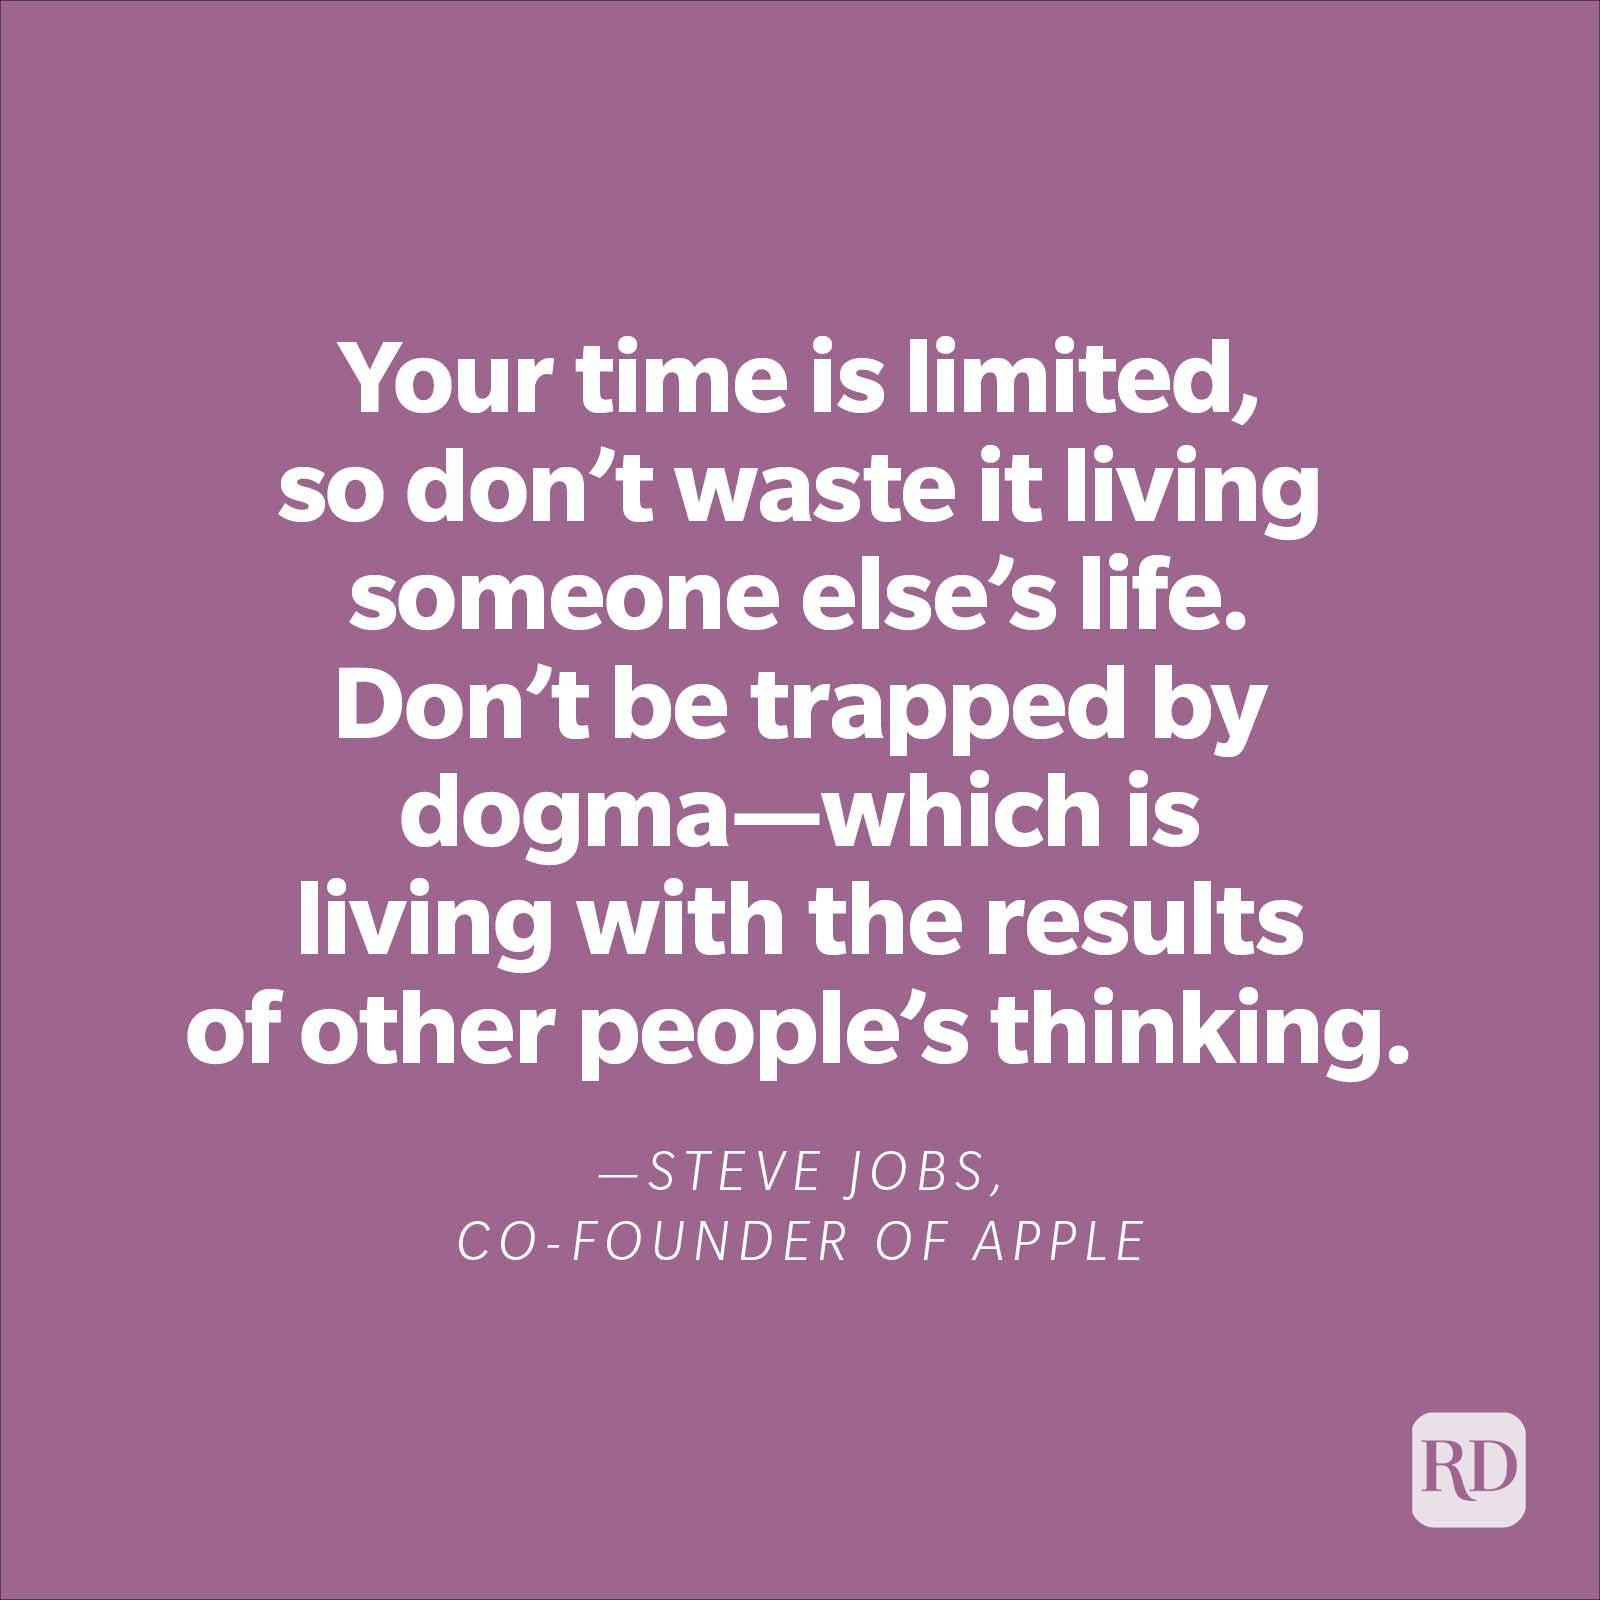 """""""Your time is limited, so don't waste it living someone else's life. Don't be trapped by dogma—which is living with the results of other people's thinking."""" —Steve Jobs, co-founder of Apple"""